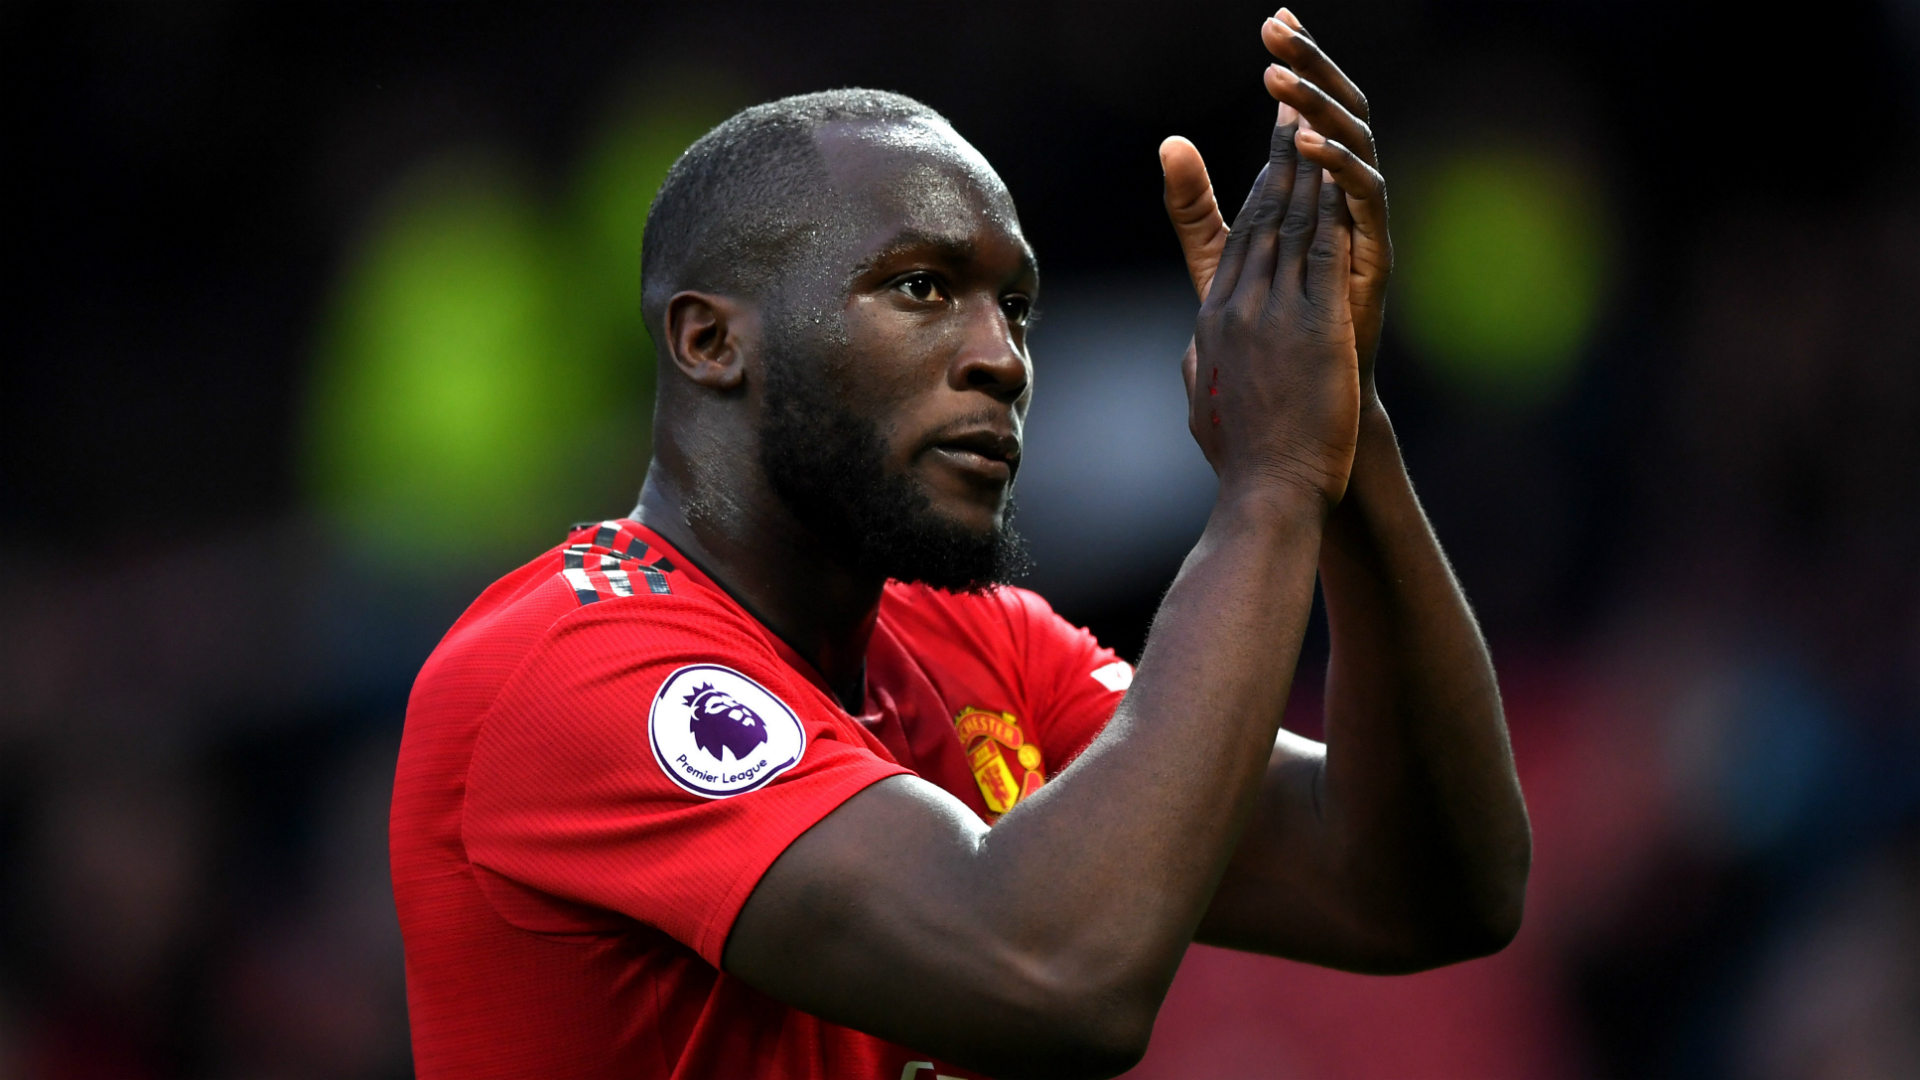 'I think Lukaku should stay' - Berbatov backs striker to remain at Man Utd amid Inter rumours